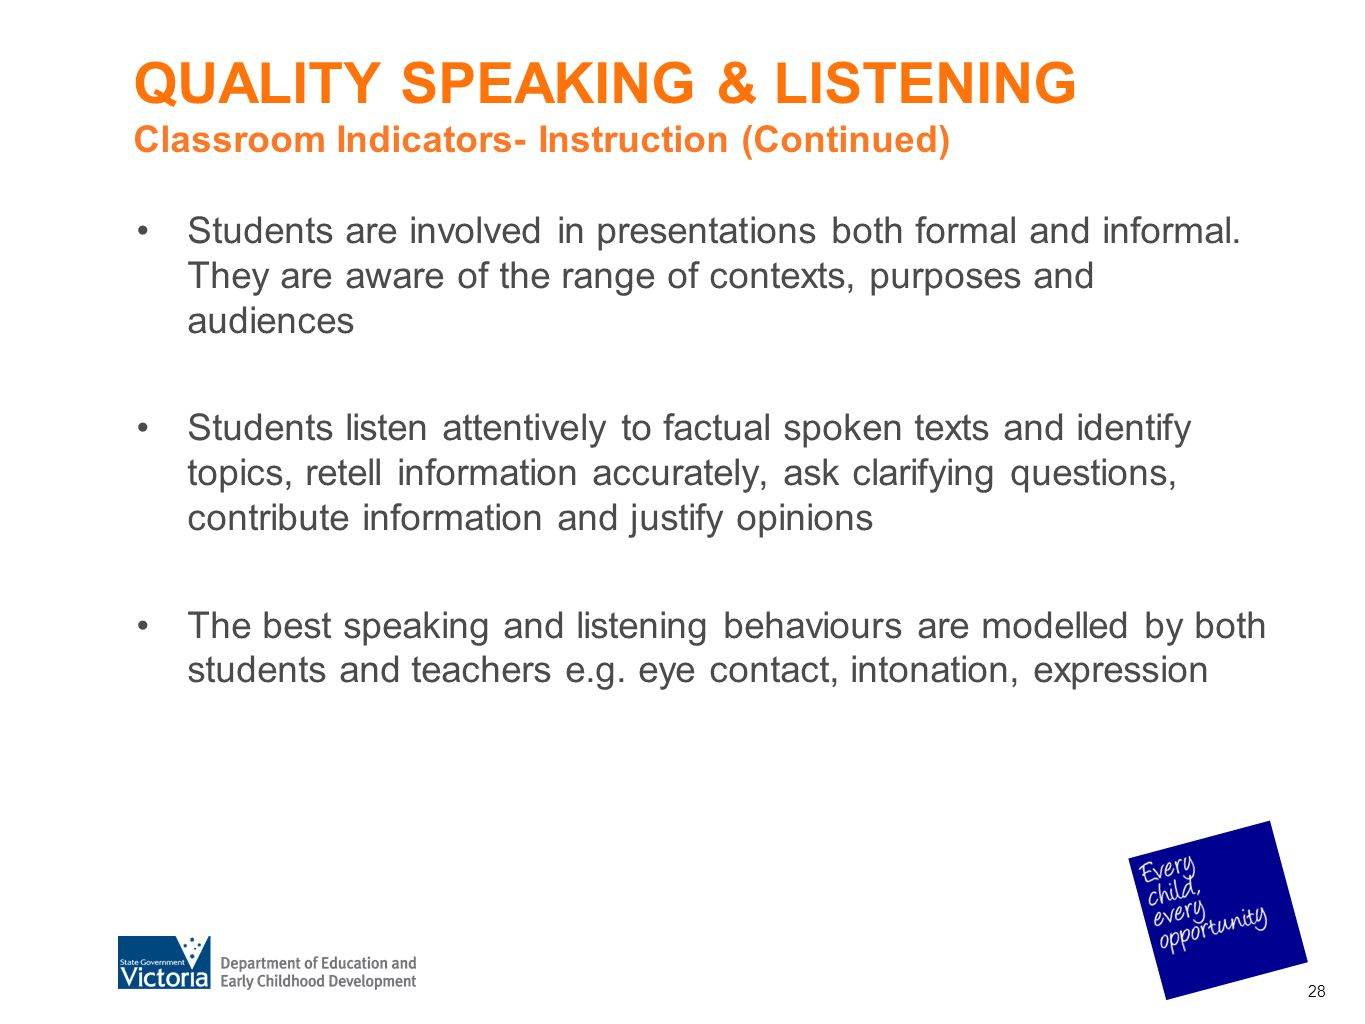 QUALITY SPEAKING & LISTENING Classroom Indicators- Instruction (Continued)